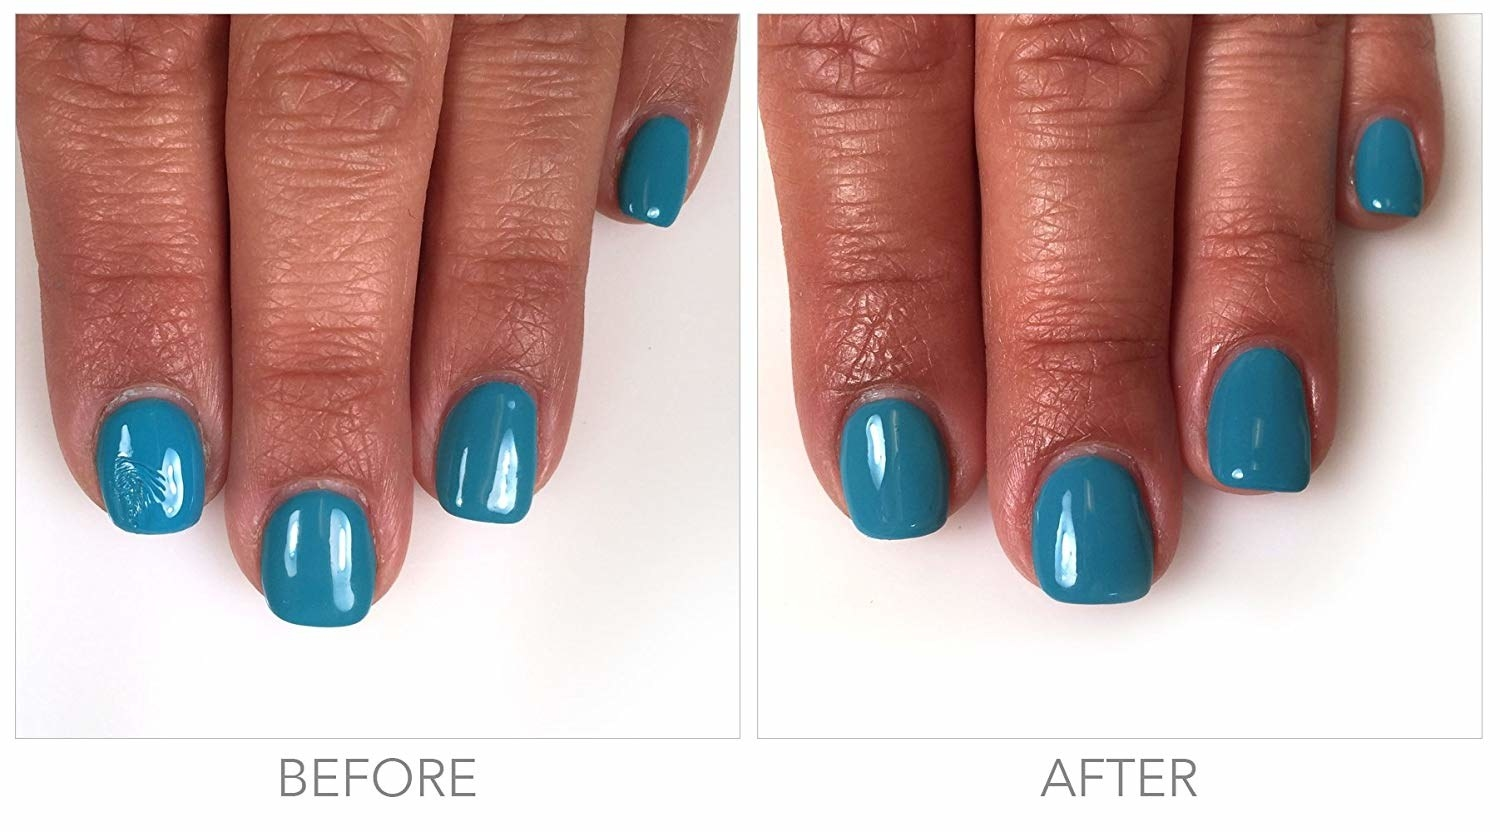 A before image of a smudged nail and an after image with the smudge buffed out